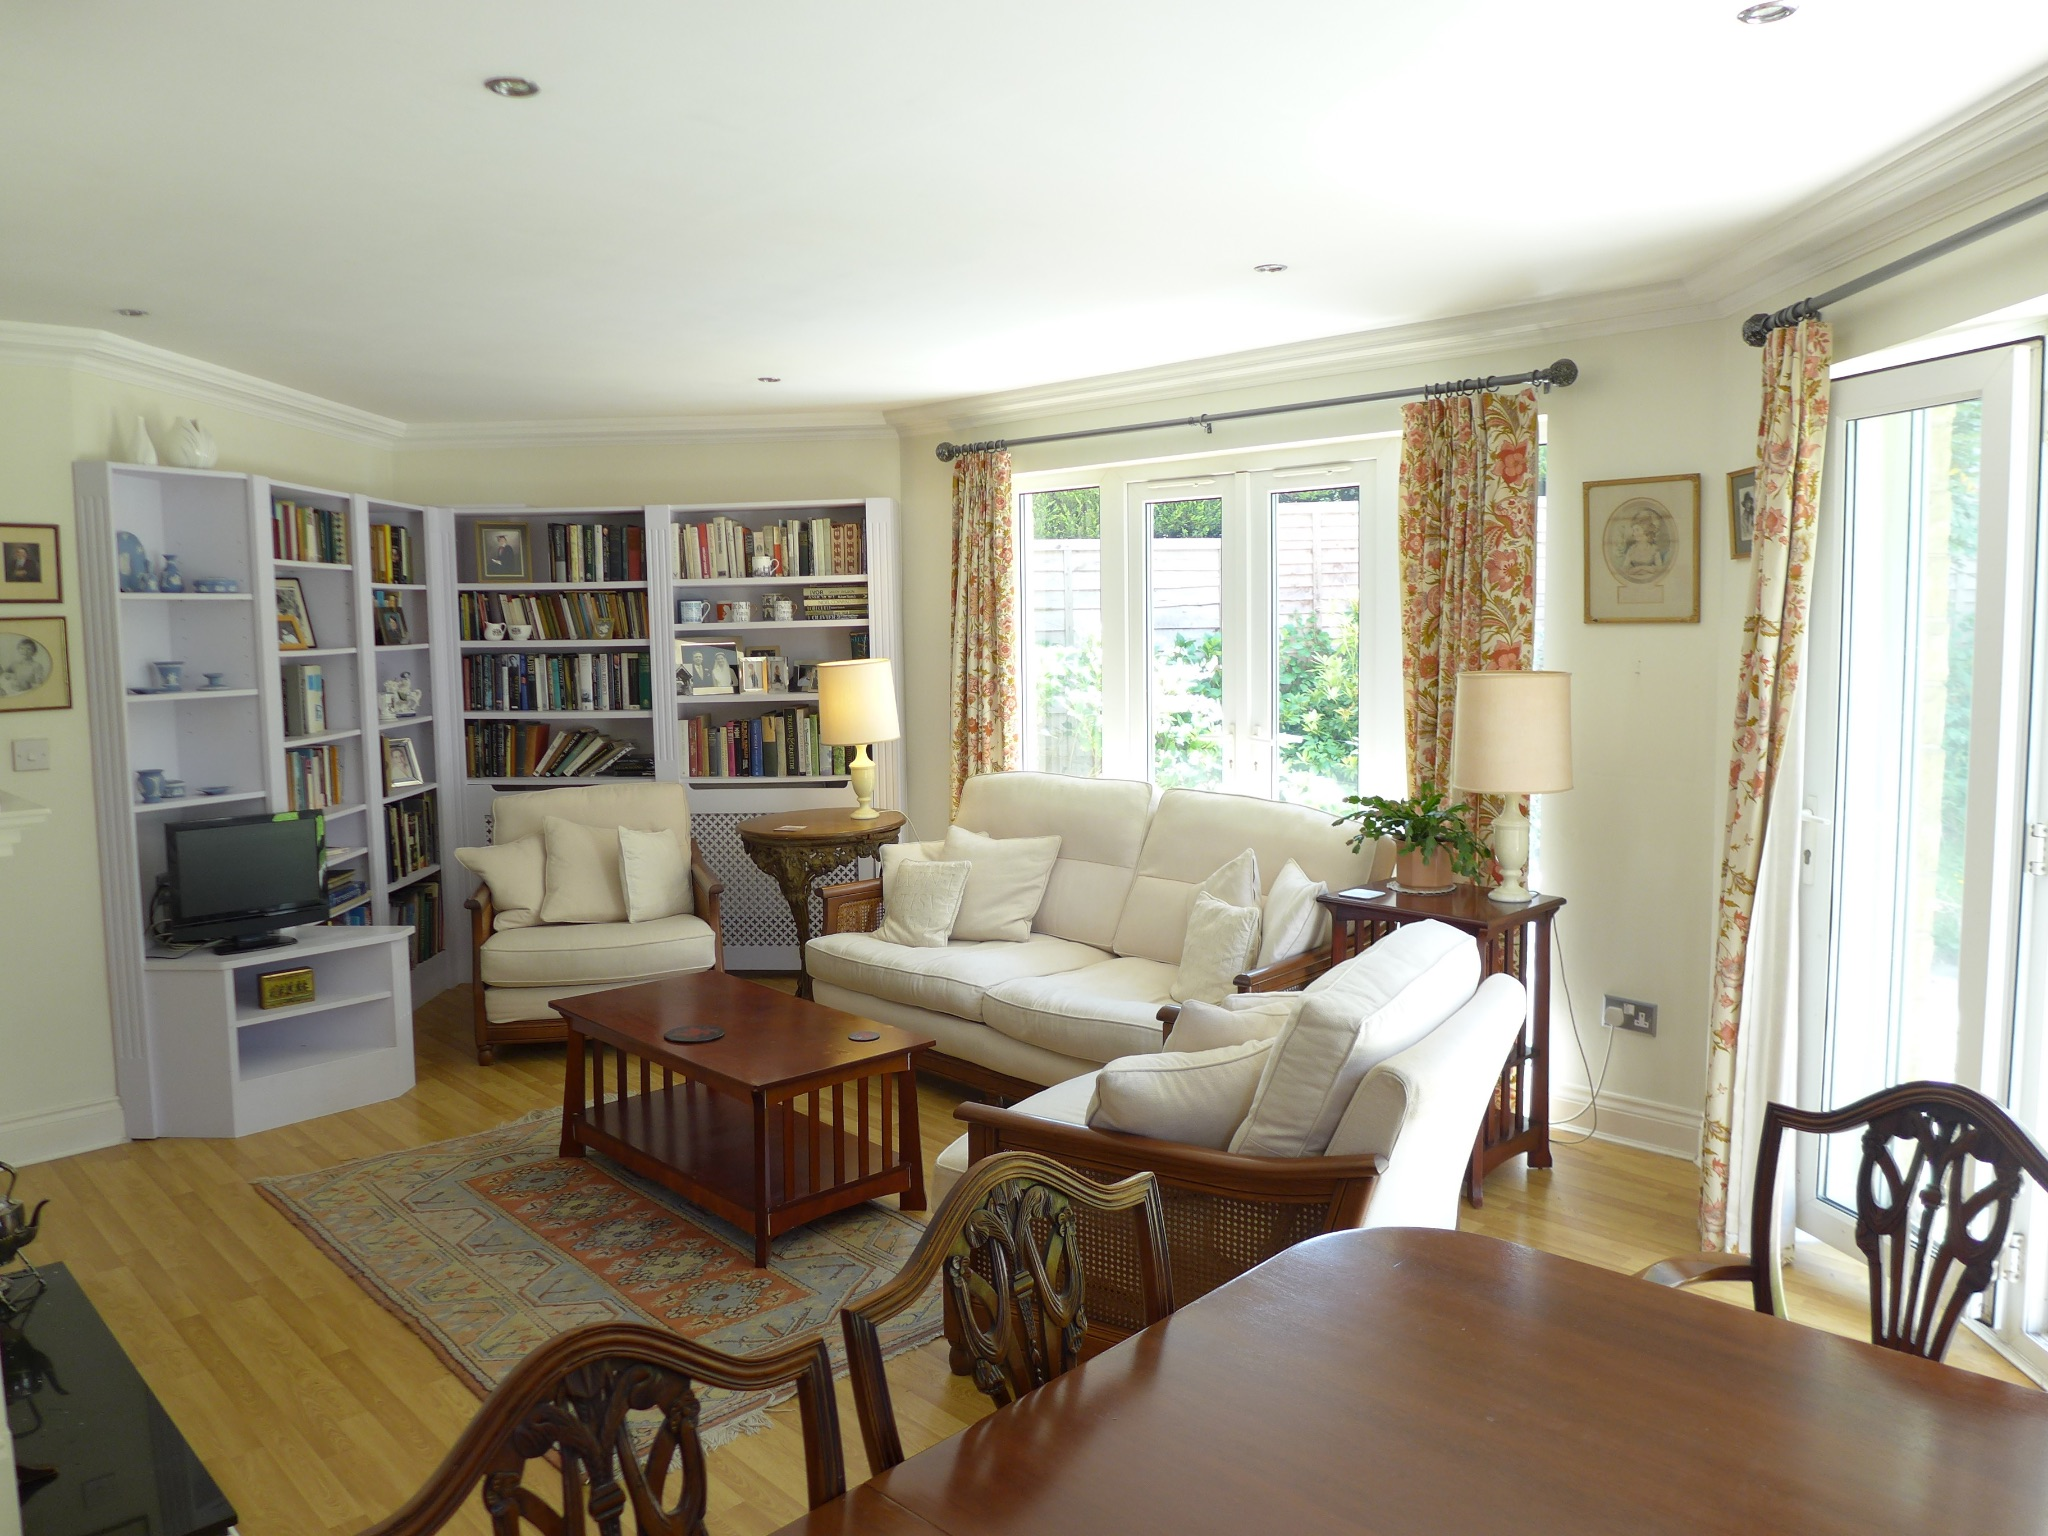 3 bedroom detached house For Sale in Todmorden - Photograph 6.